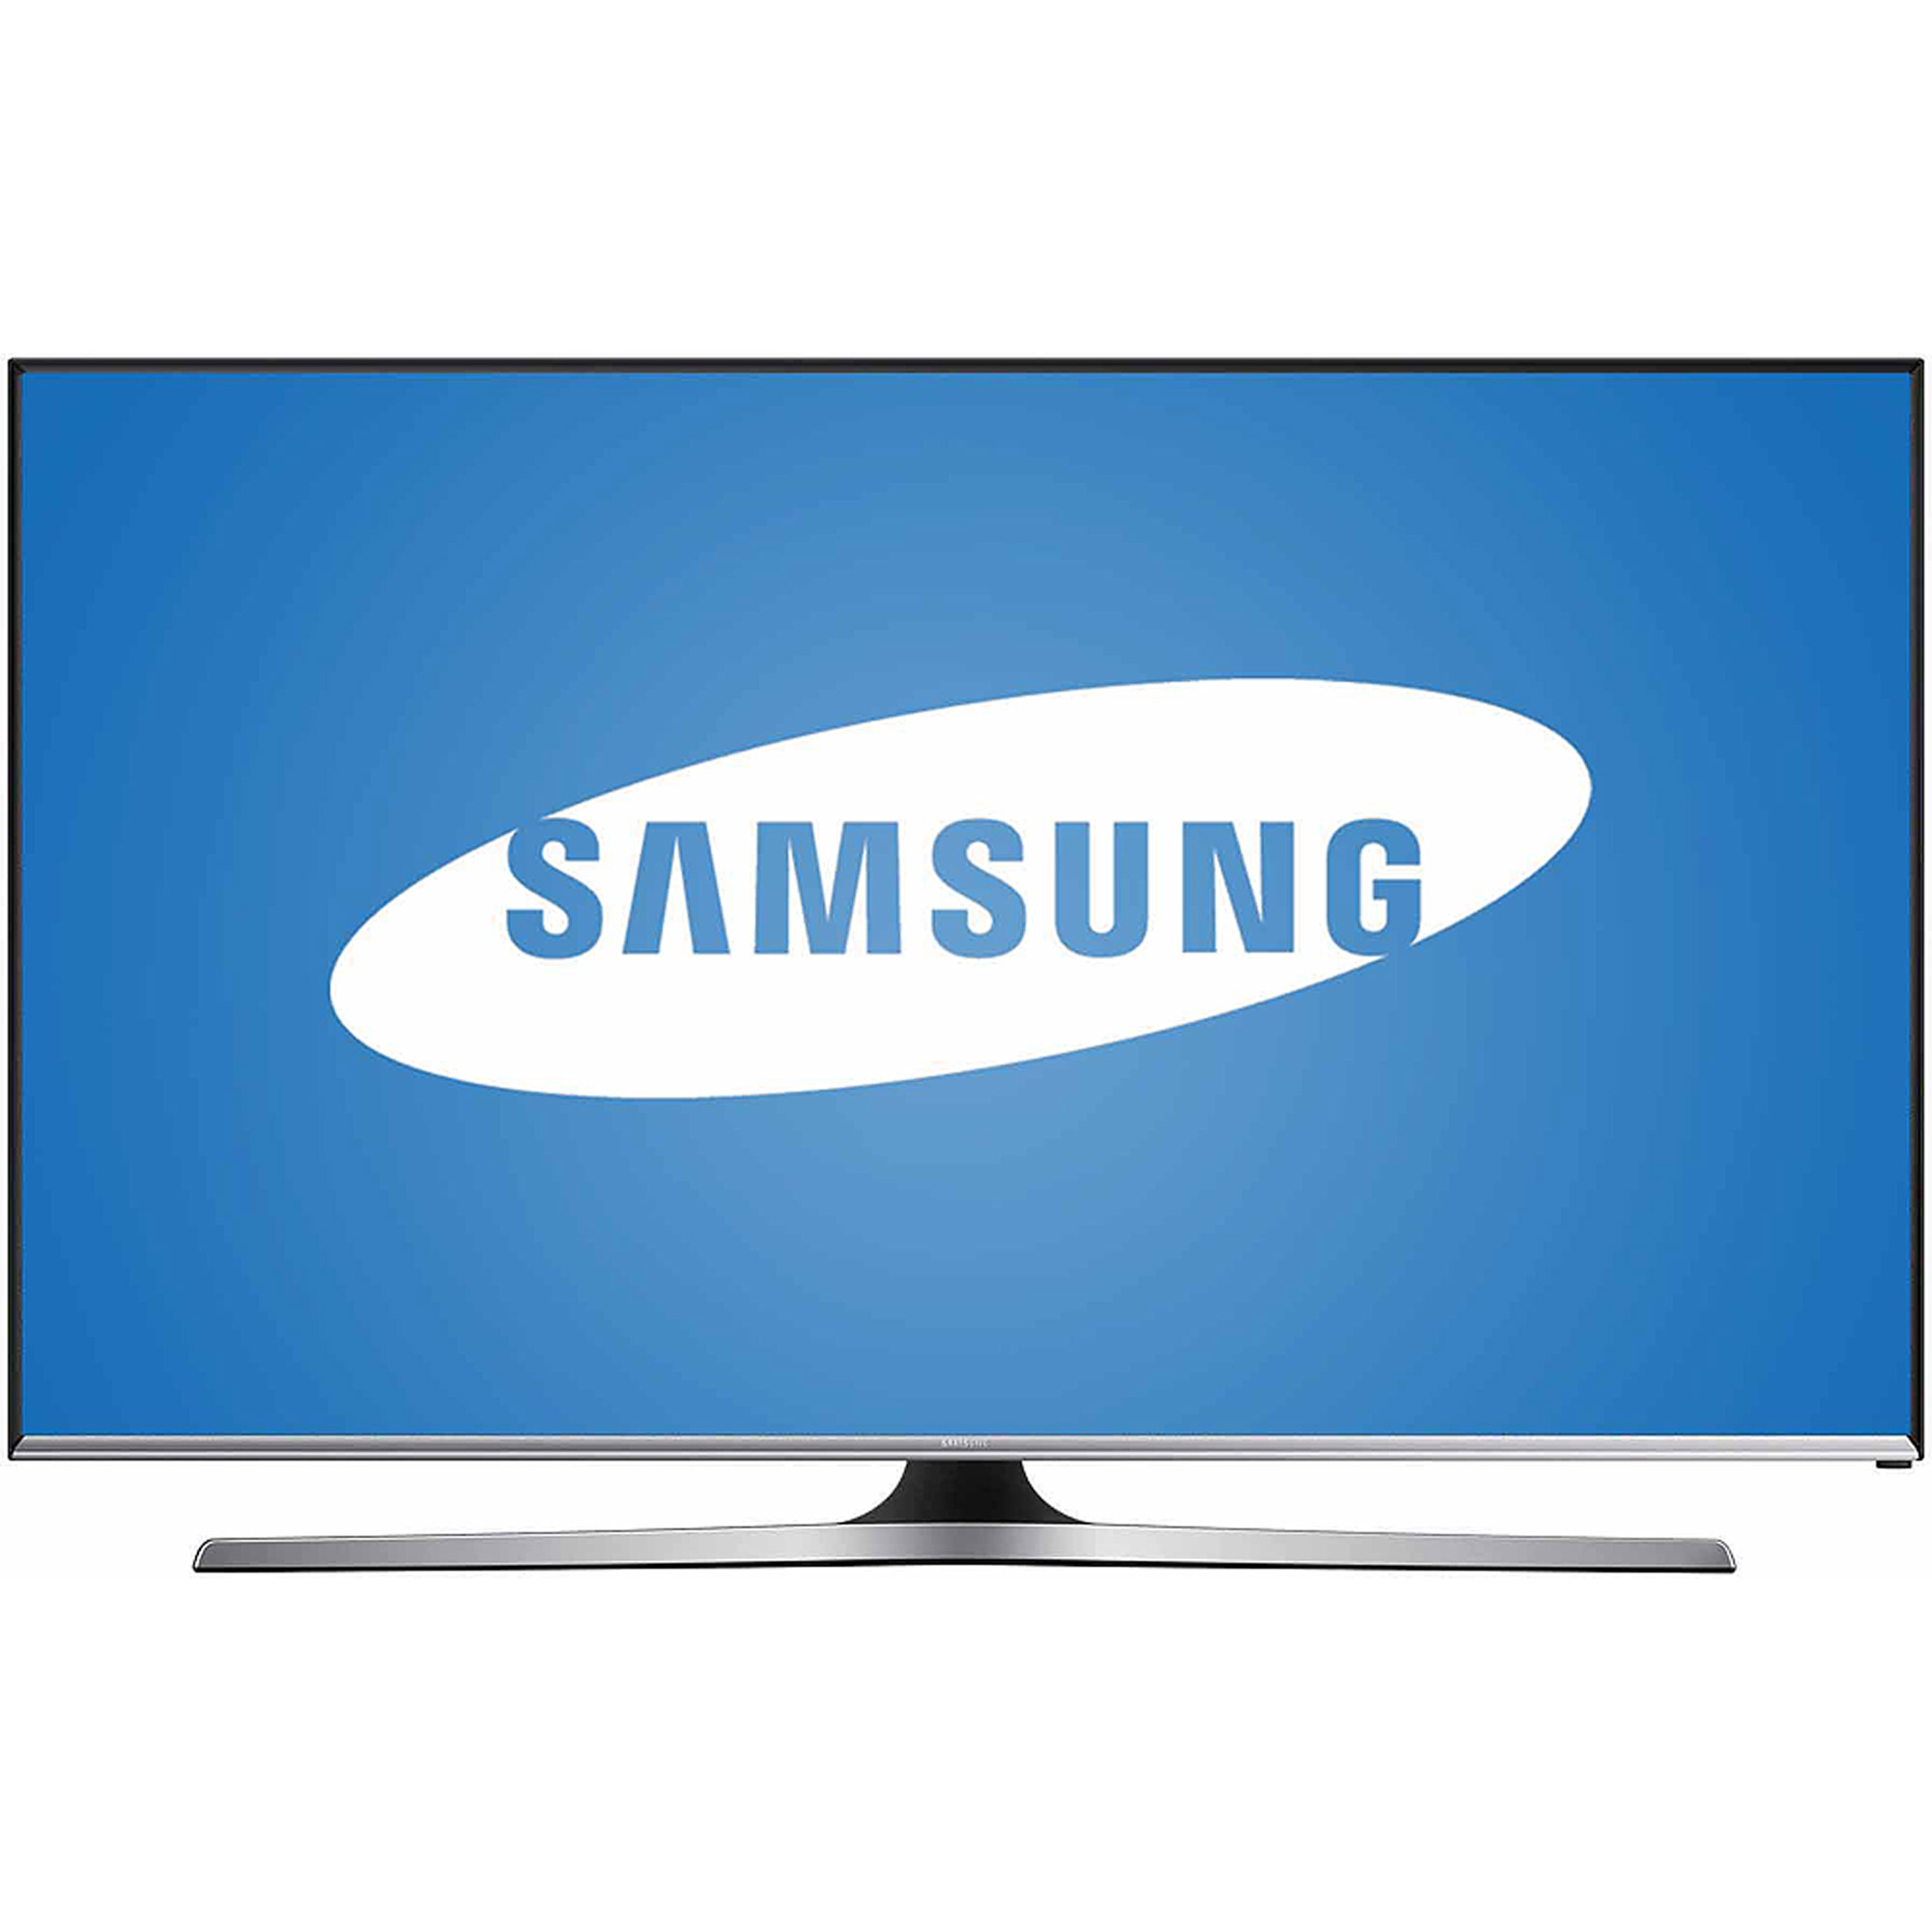 "SAMSUNG 40"" 5500 Series - Full HD Smart LED TV - 1080p, 120MR (Model#: UN40J5500)"